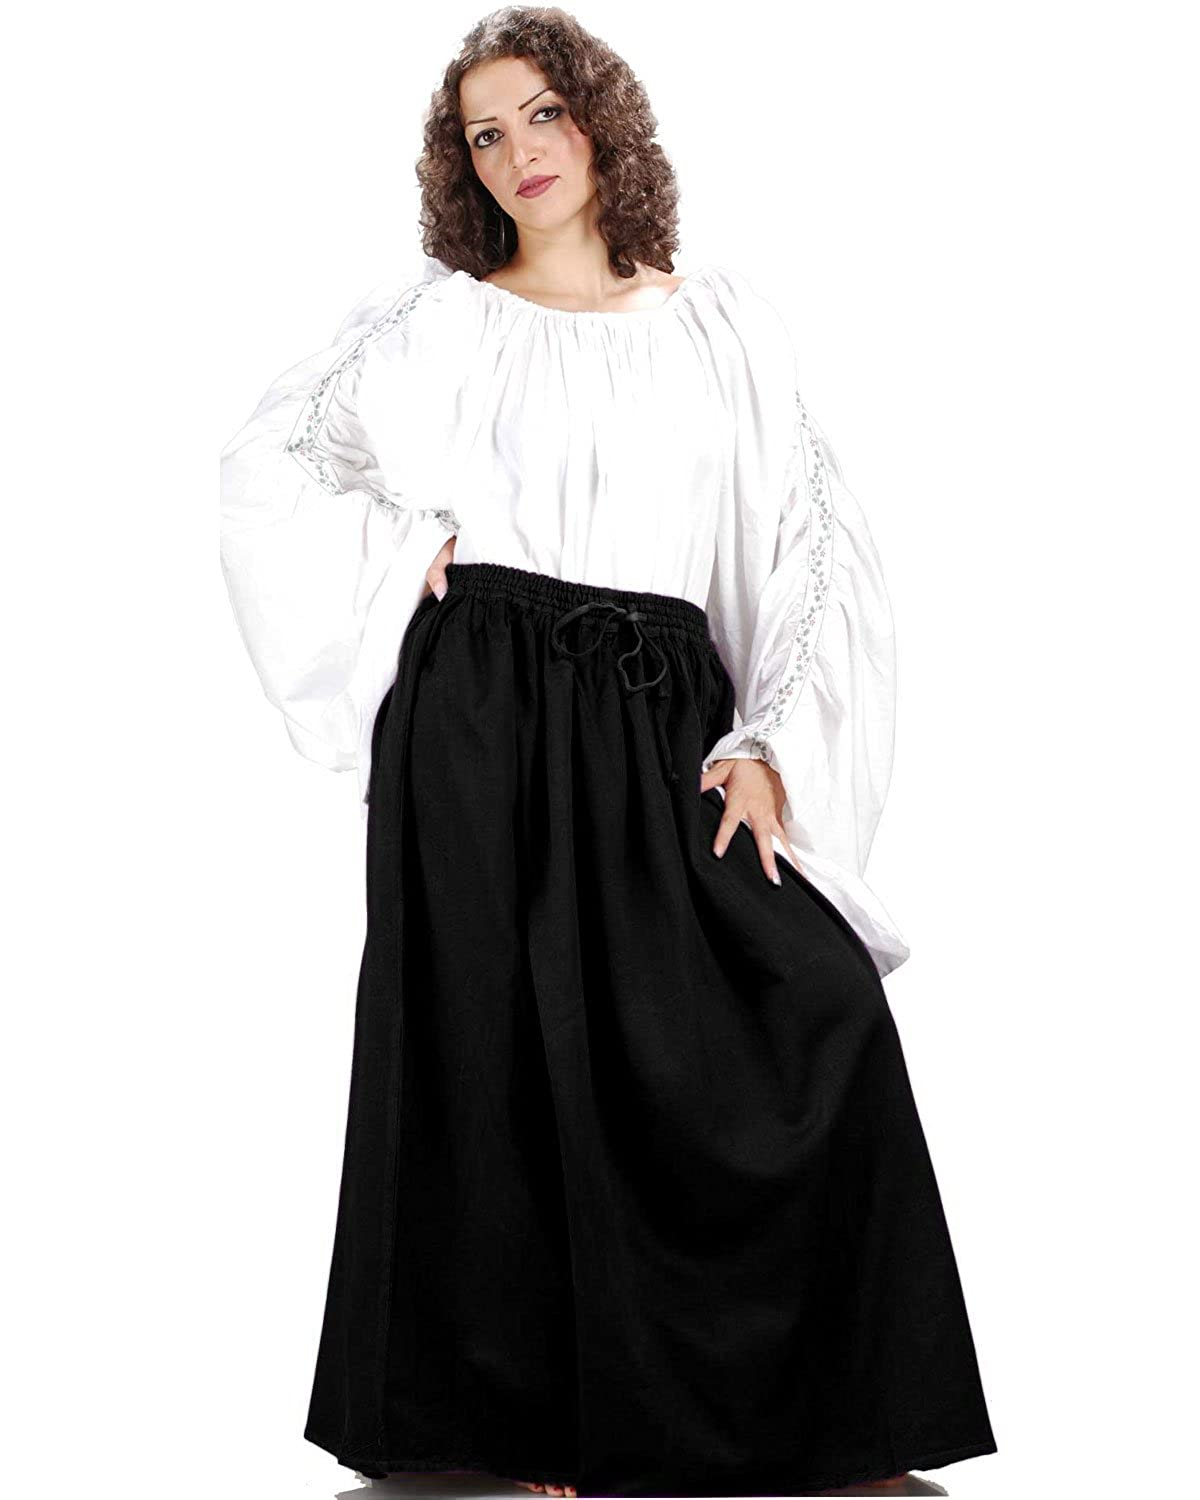 Women's Classic Renaissance Medieval Black Cotton Wench Skirt by ThePirateDressing - DeluxeAdultCostumes.com